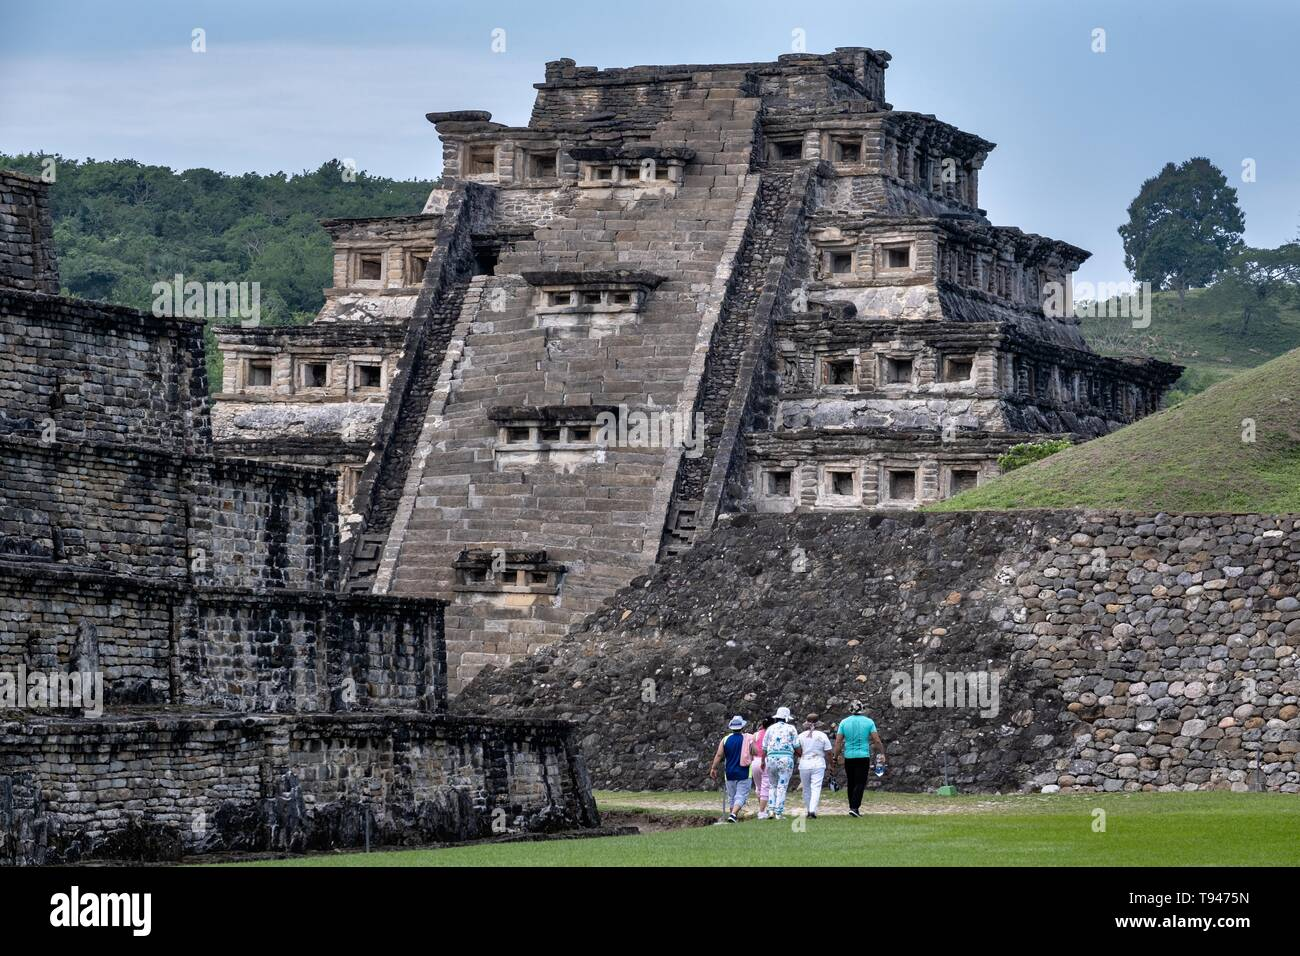 Tourists walk toward the Mesoamerica Pyramid of the Niches at the pre-Columbian archeological complex of El Tajin in Tajin, Veracruz, Mexico. El Tajín flourished from 600 to 1200 CE and during this time numerous temples, palaces, ballcourts, and pyramids were built by the Totonac people and is one of the largest and most important cities of the Classic era of Mesoamerica. - Stock Image